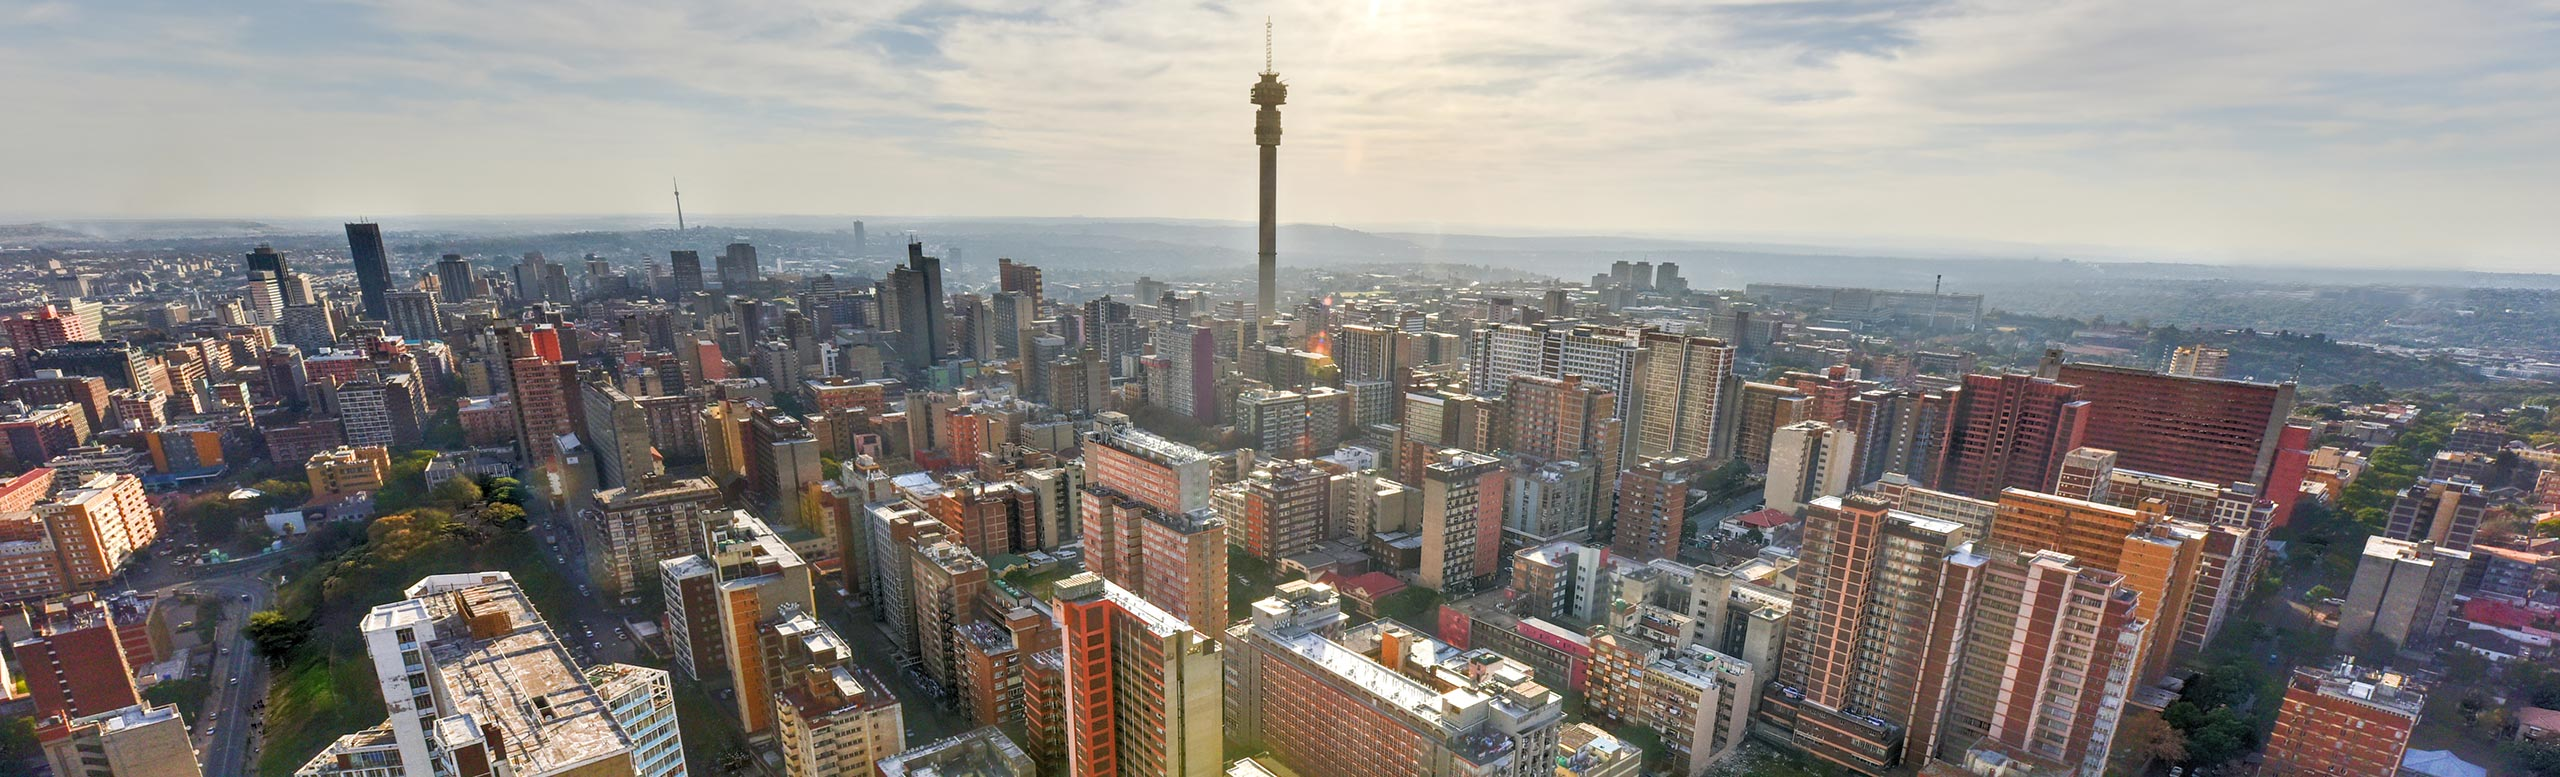 car hire rentals south africa city day